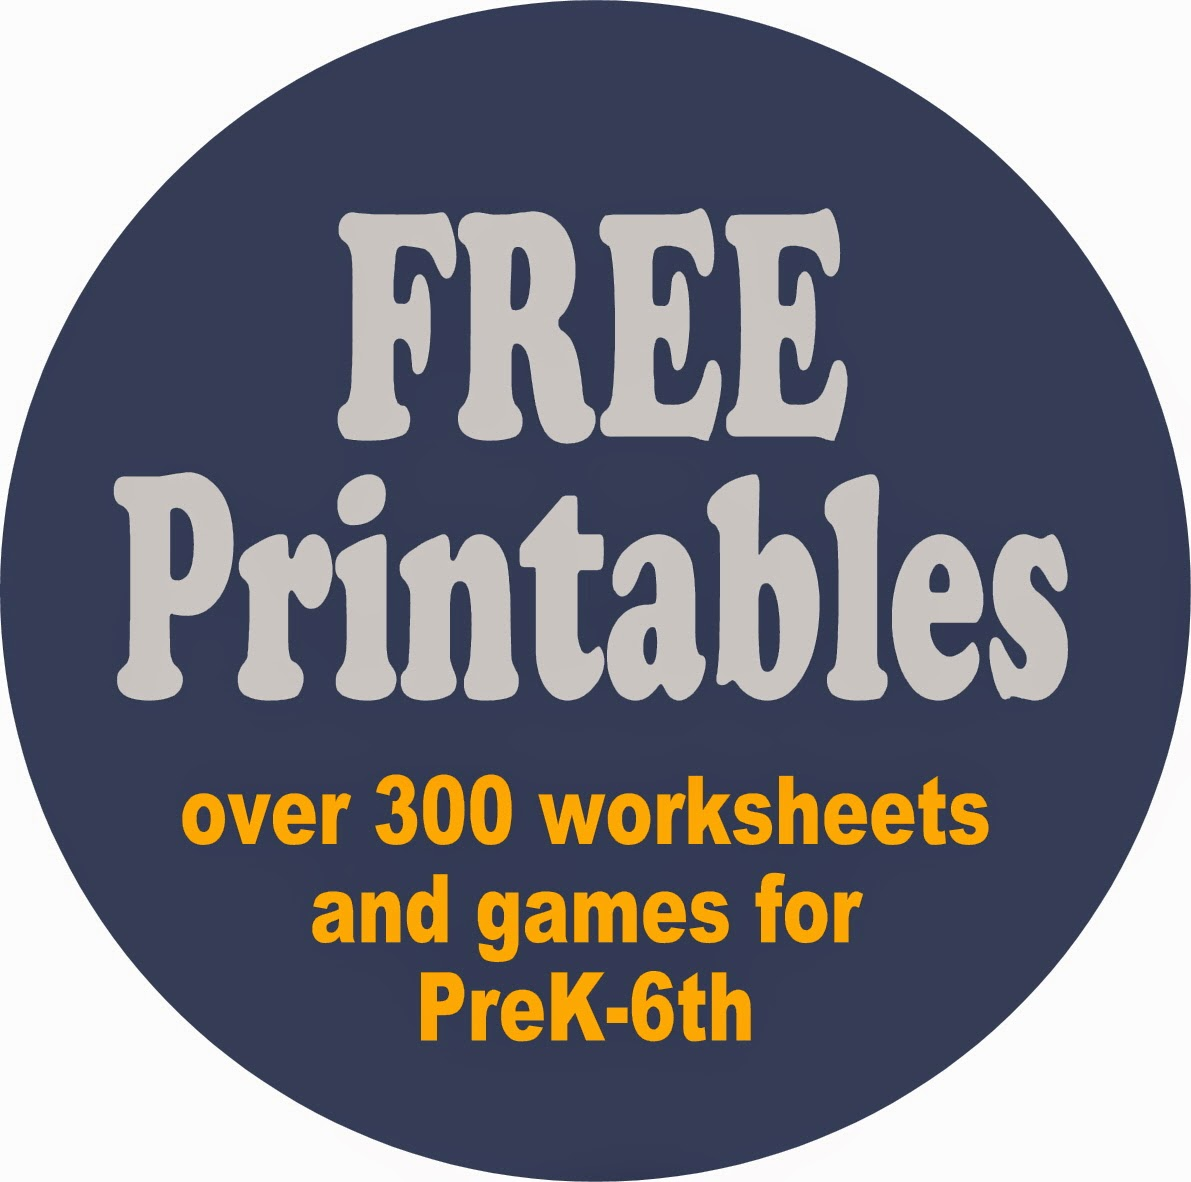 Worksheets Free Preschool Worksheets Age 4 123 homeschool 4 me worksheets for kids over 300 games lapbooks and units kids